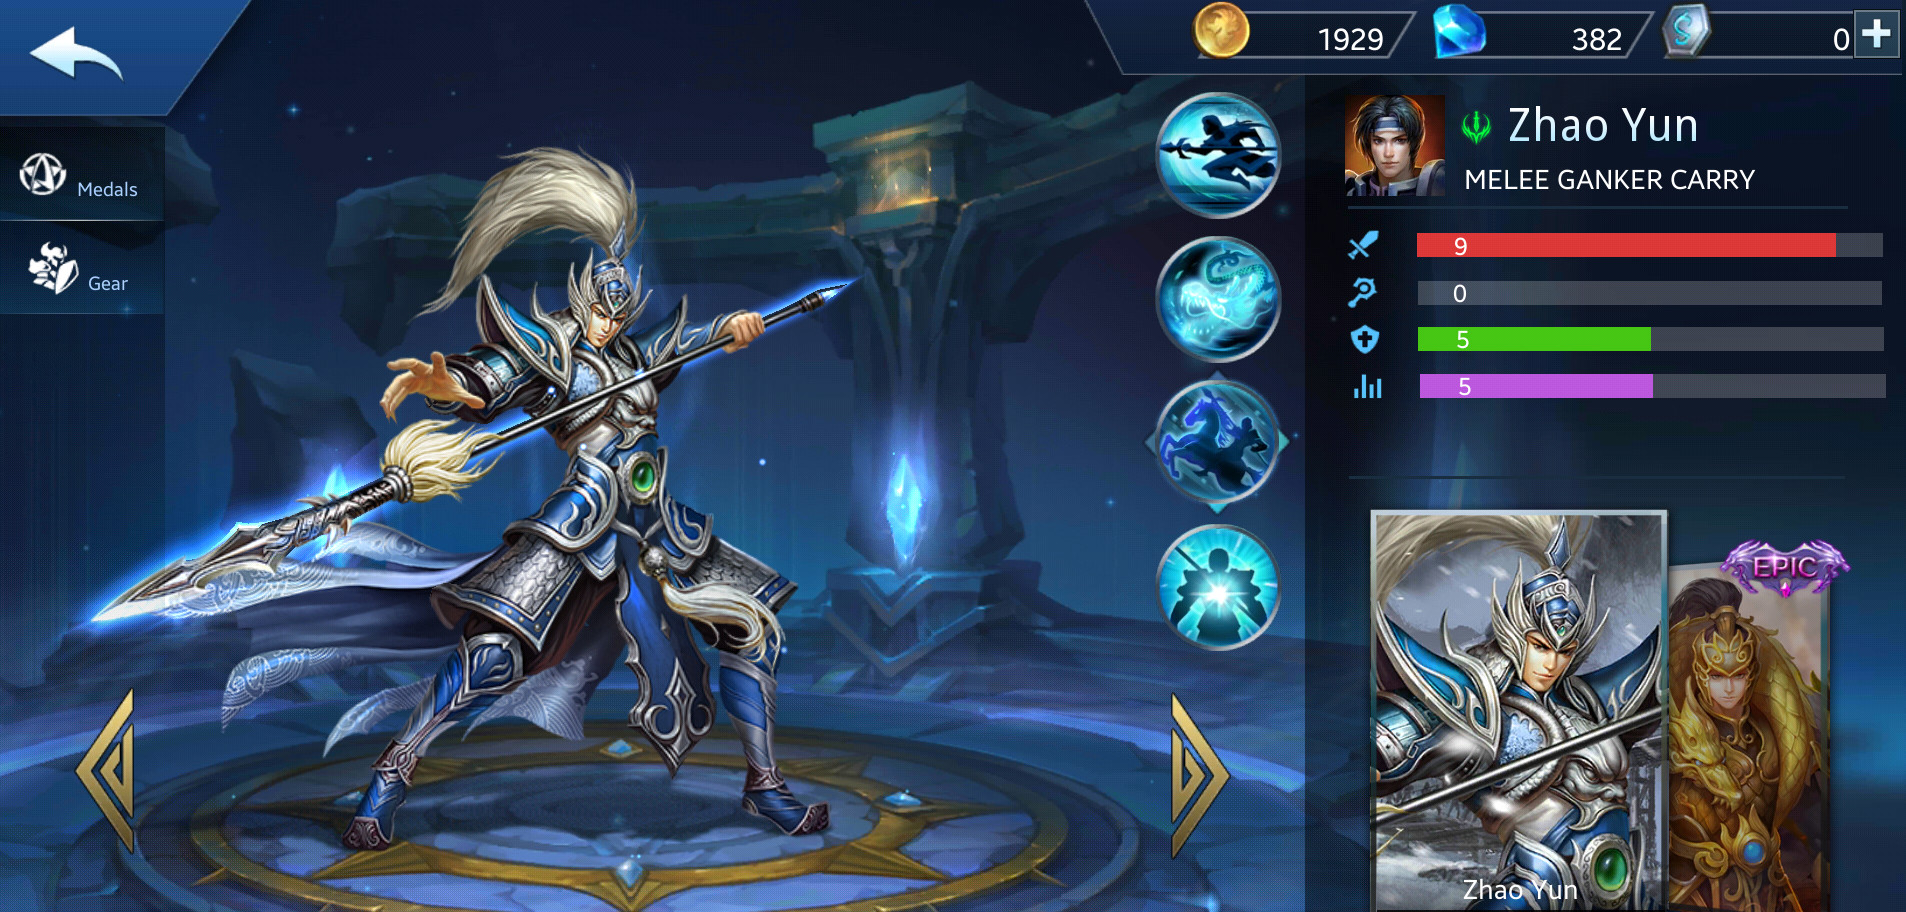 Photo of Zhao Yun Build Guide In Heroes Evolved Mobile Game